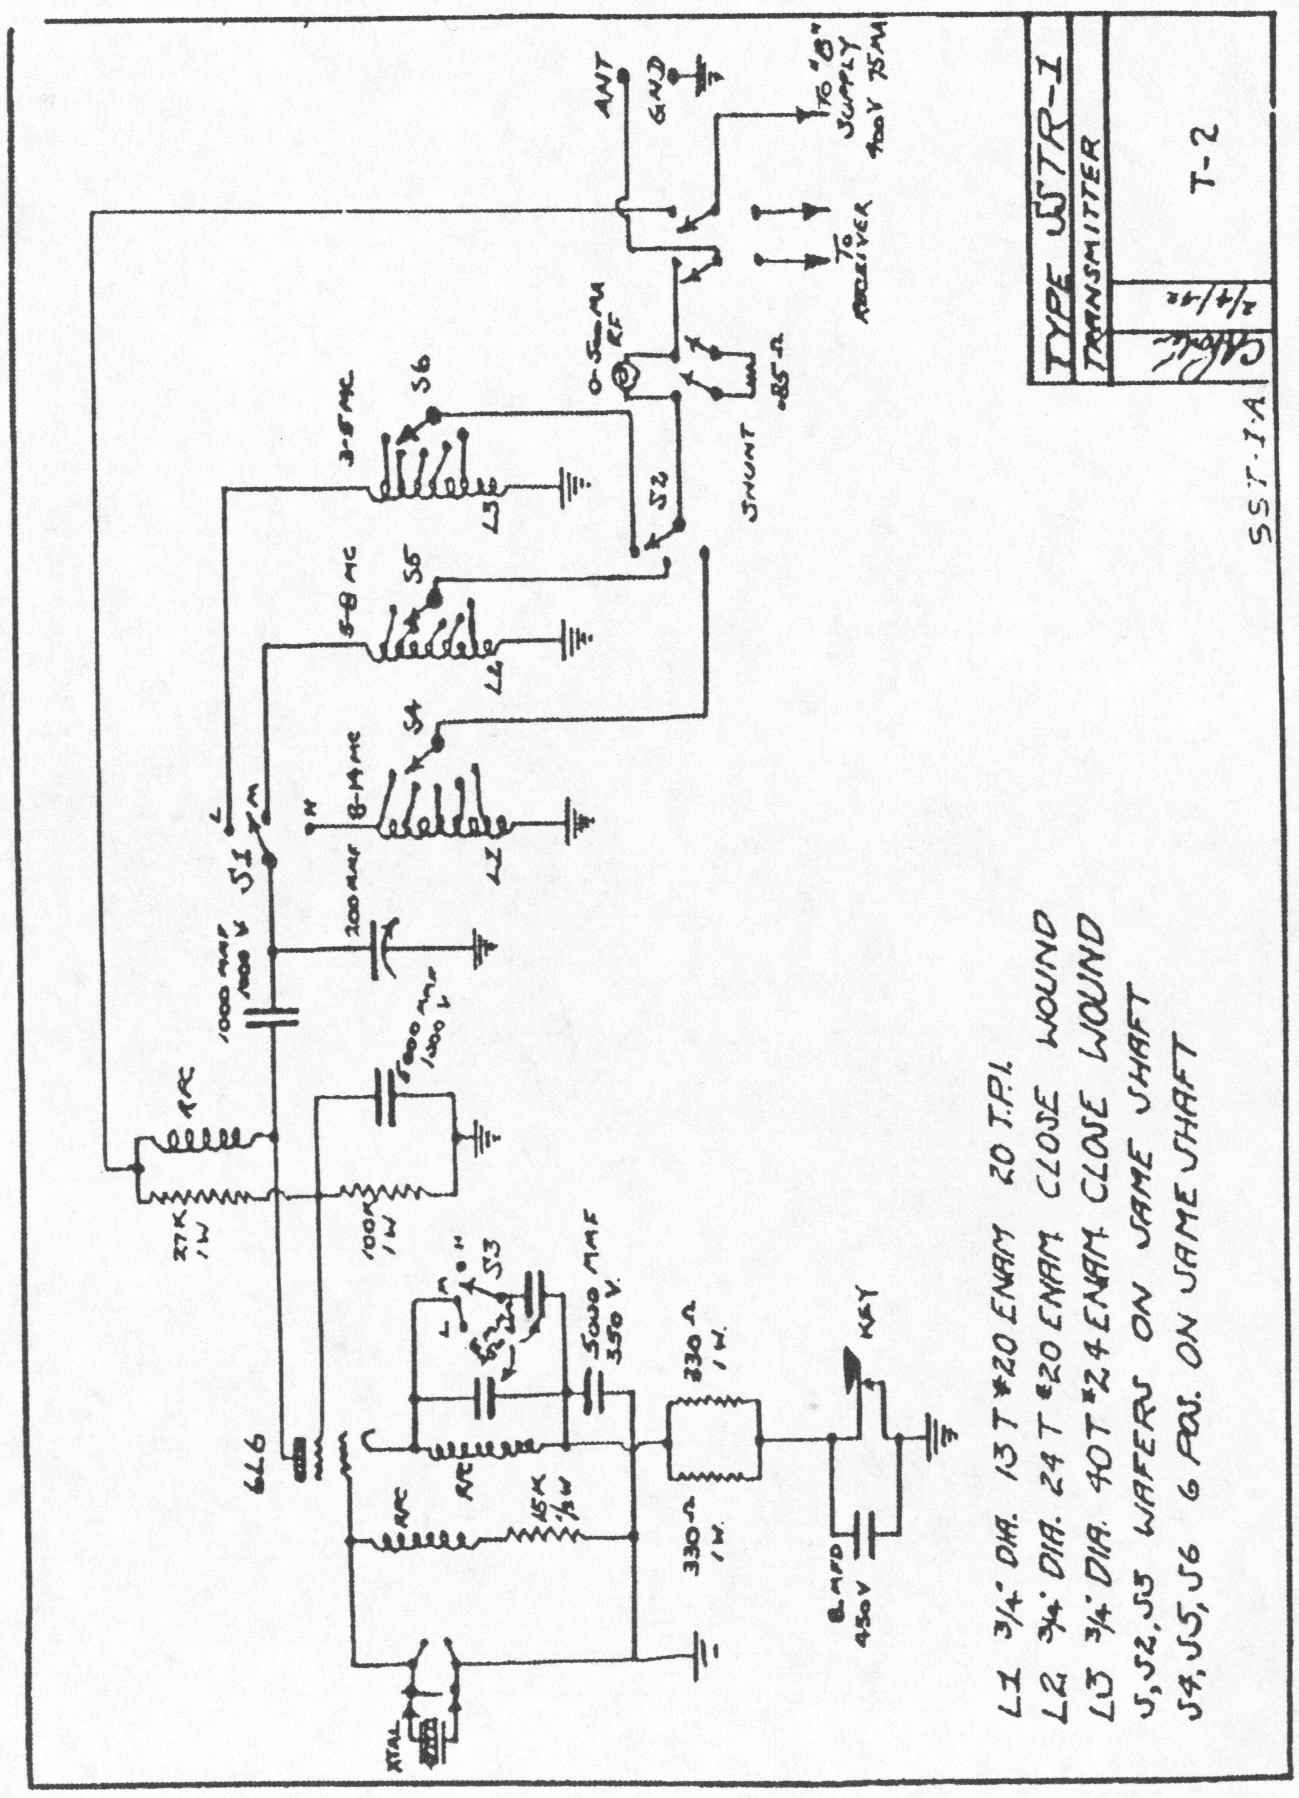 sstr radio set sst 1 schematic